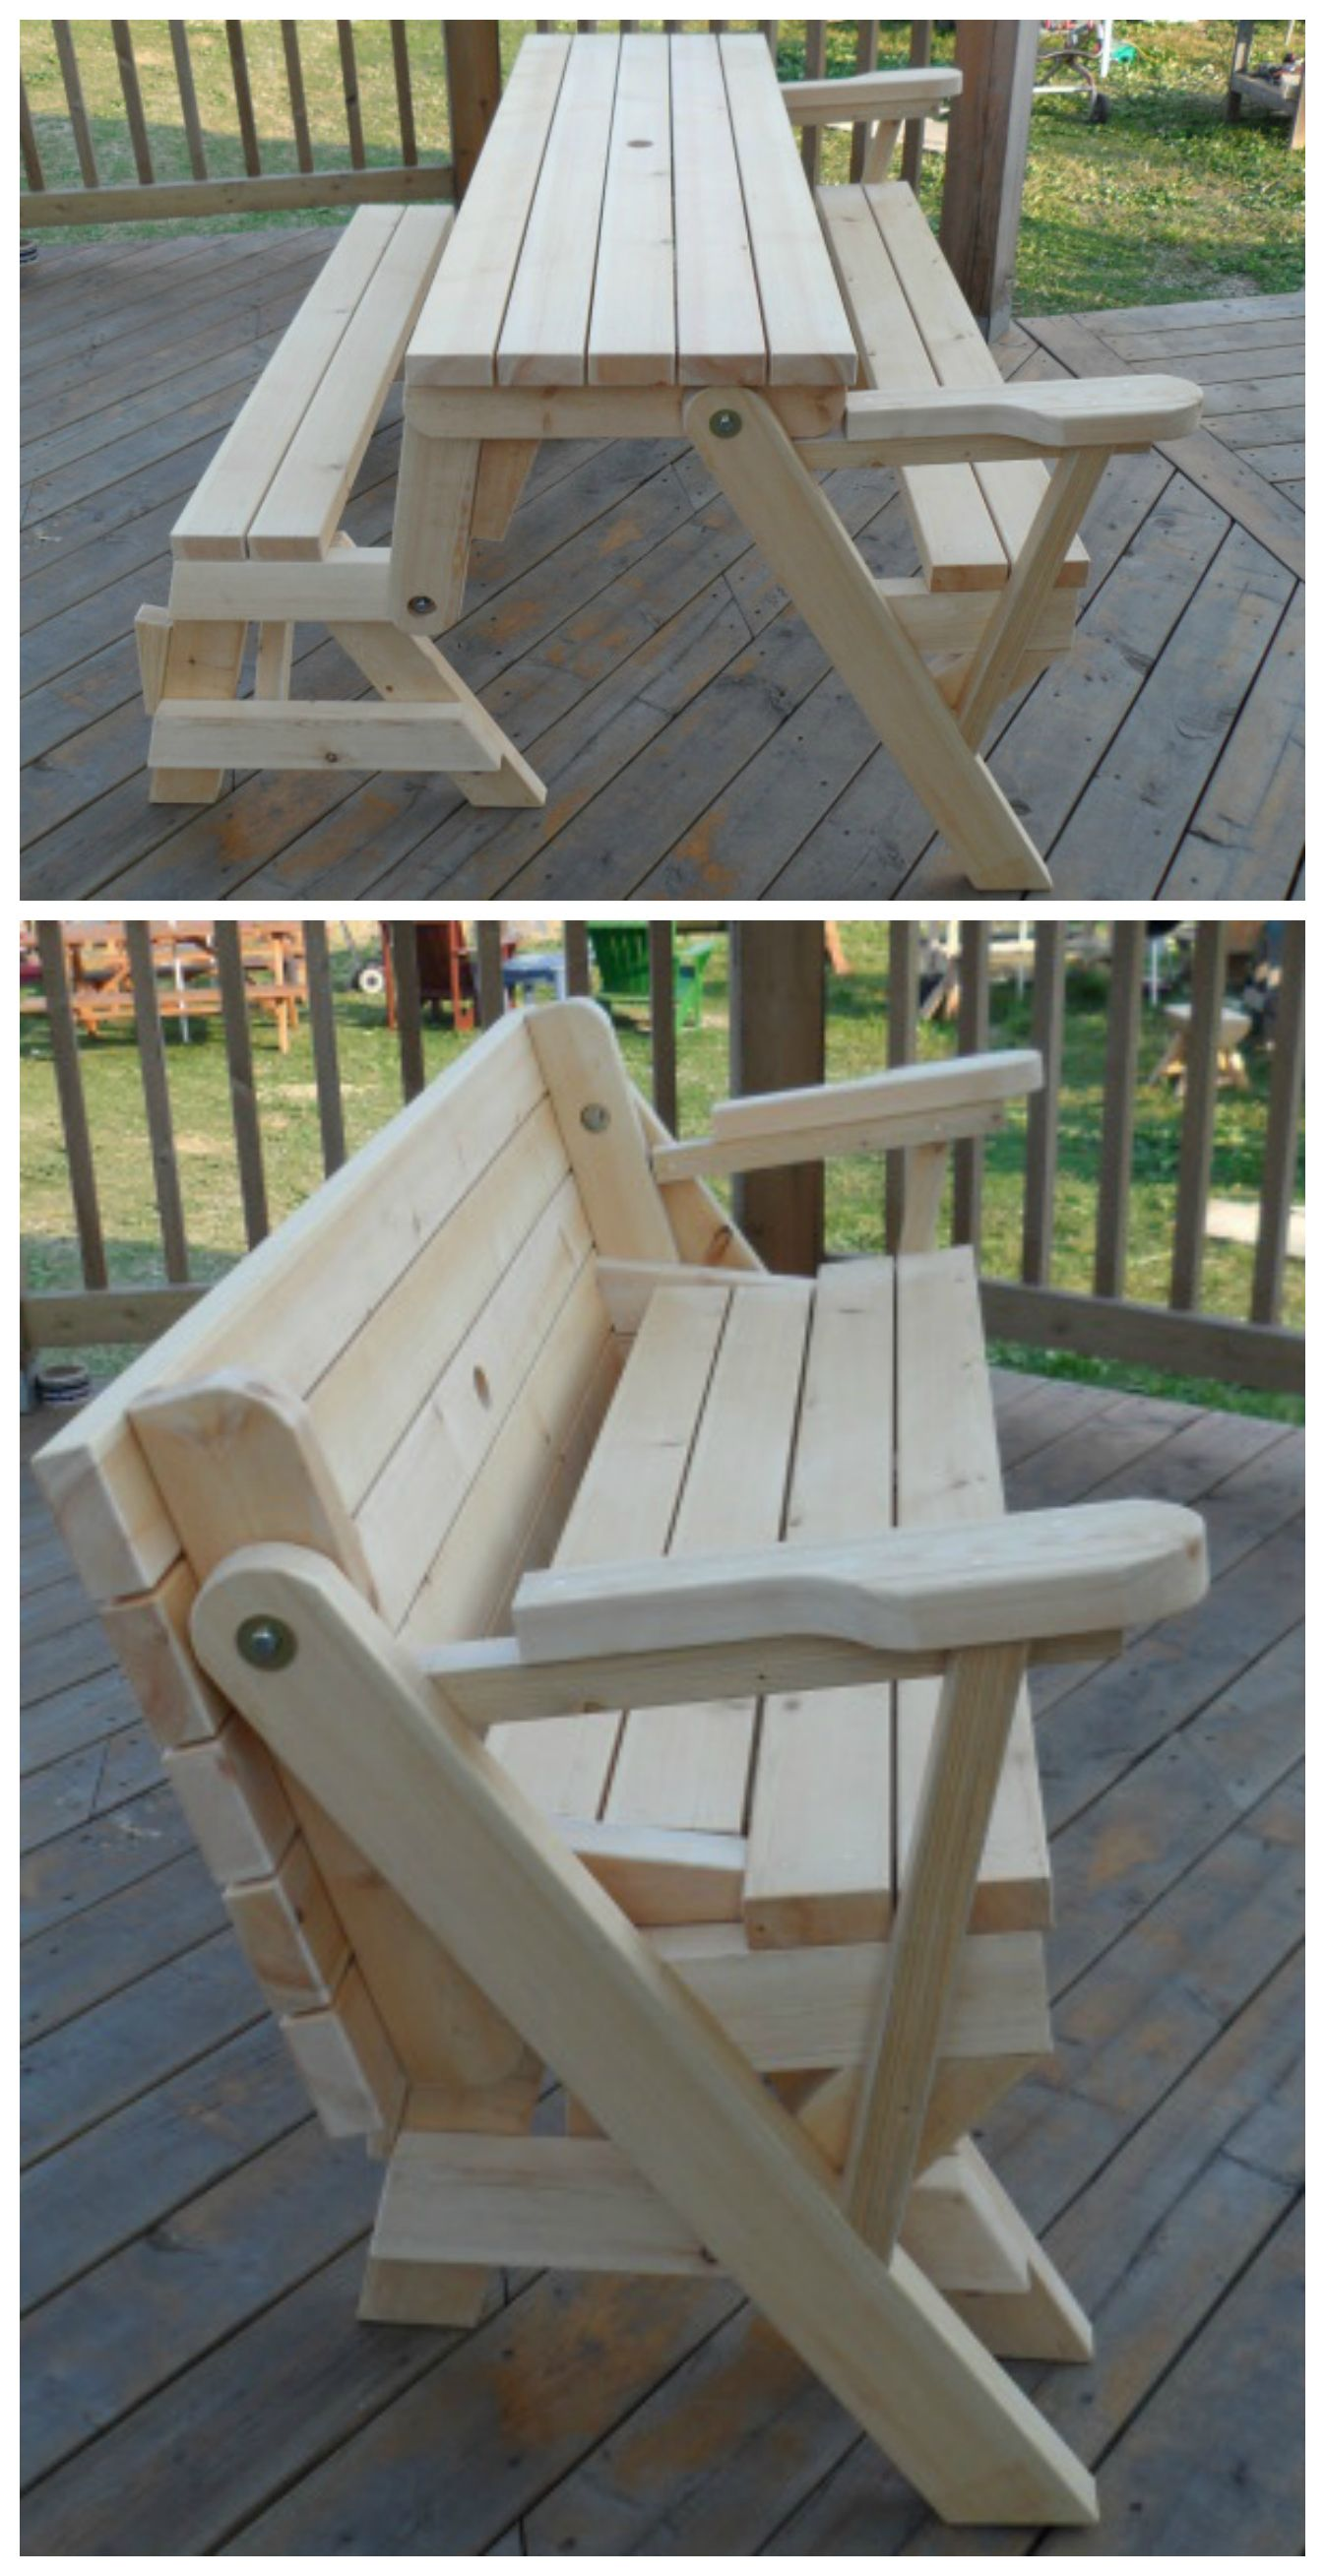 Quot Transformer Quot Bench Picnic Table Built By Youngwoo In